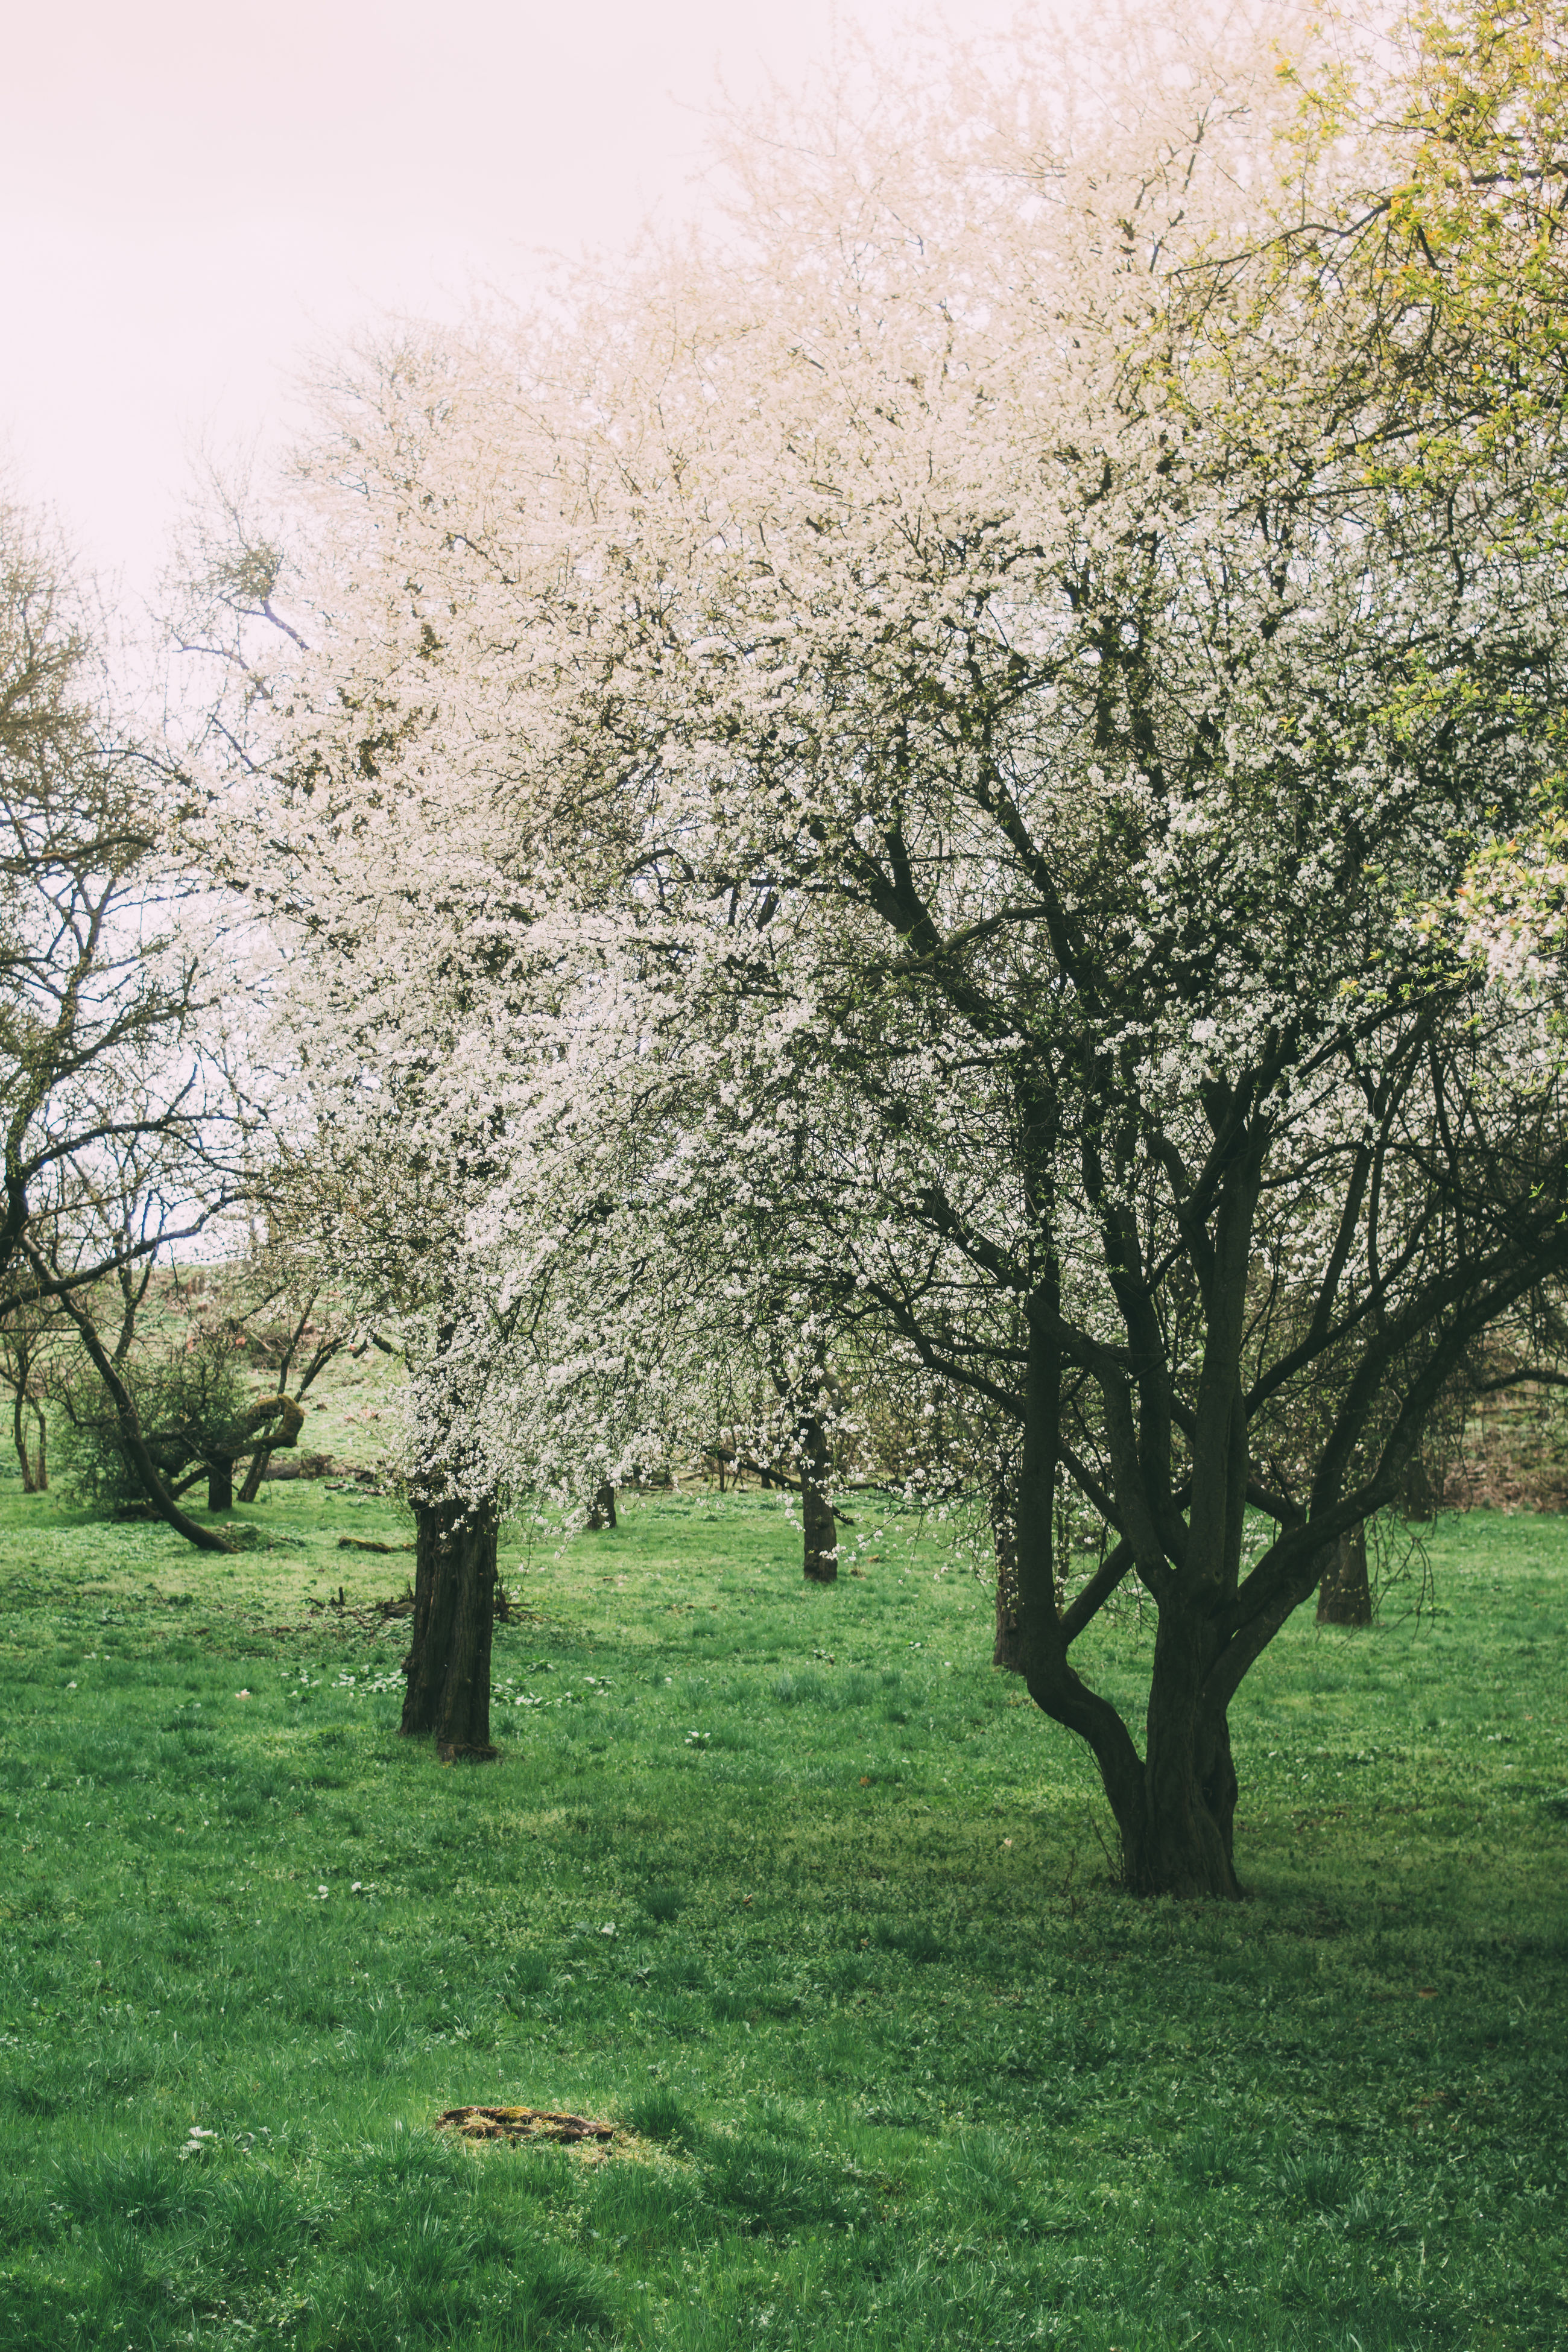 tree, nature, beauty in nature, growth, branch, blossom, orchard, springtime, apple tree, flower, grass, apple blossom, scenics, field, tranquility, no people, freshness, day, tranquil scene, landscape, outdoors, fragility, agriculture, sky